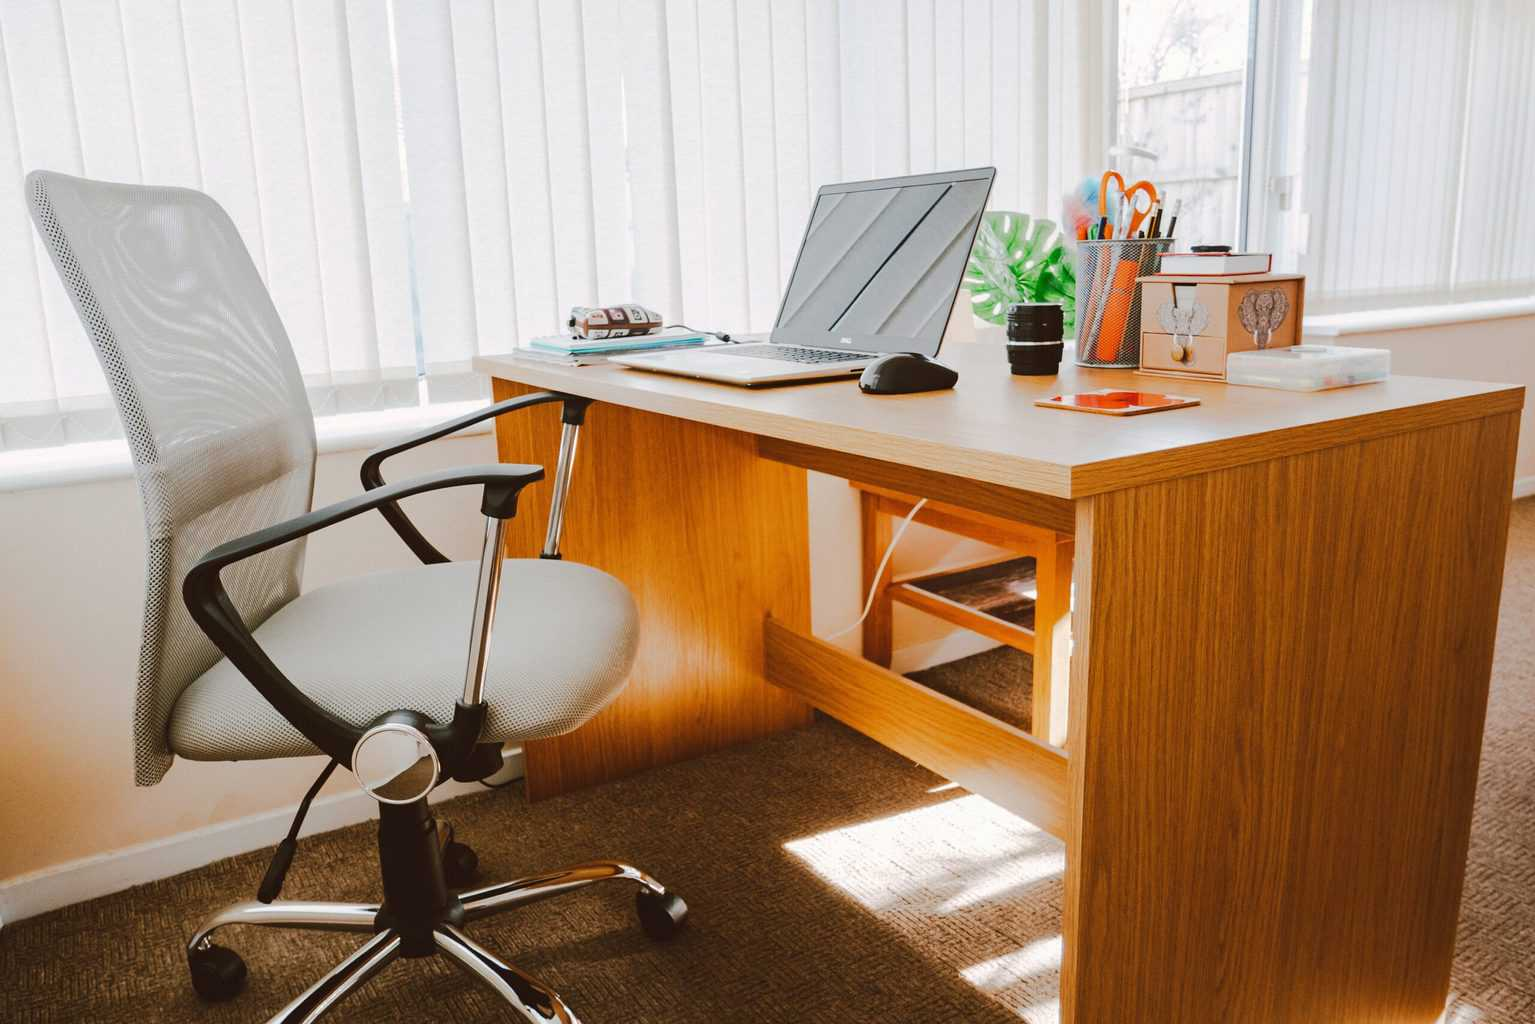 Office chair with laptop on desk